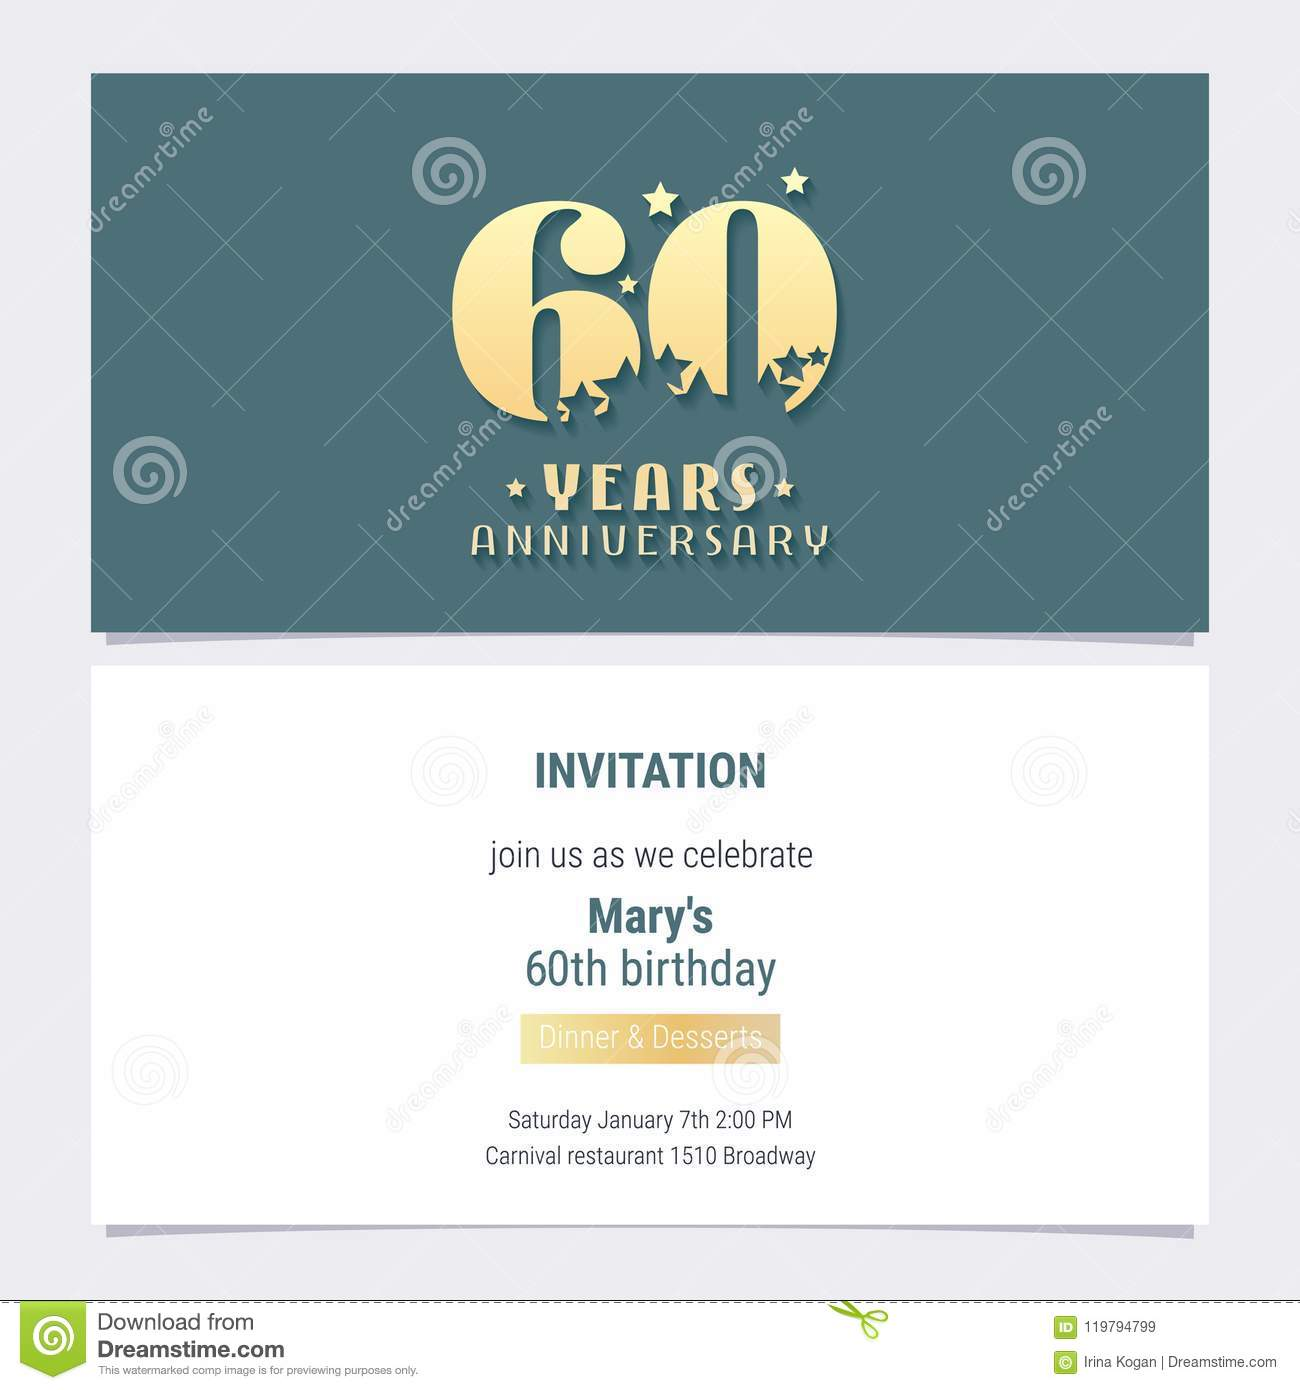 60 Years Anniversary Invitation Vector Illustration Template Design Element For 60th Birthday Card Party Invite